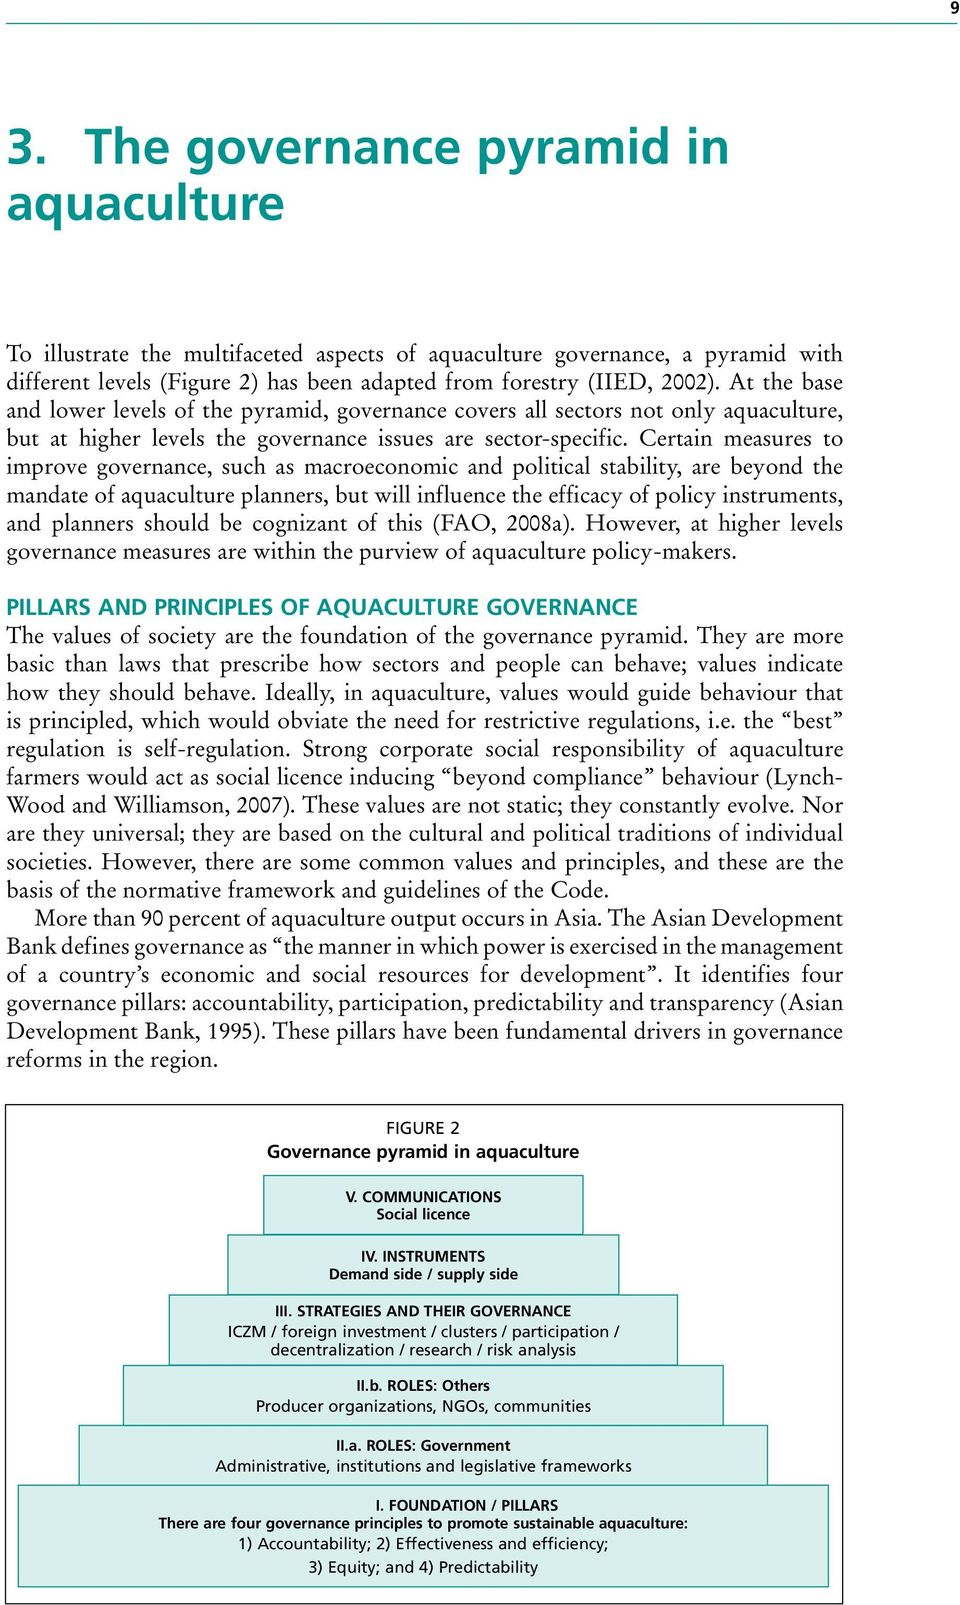 Certain measures to improve governance, such as macroeconomic and political stability, are beyond the mandate of aquaculture planners, but will influence the efficacy of policy instruments, and